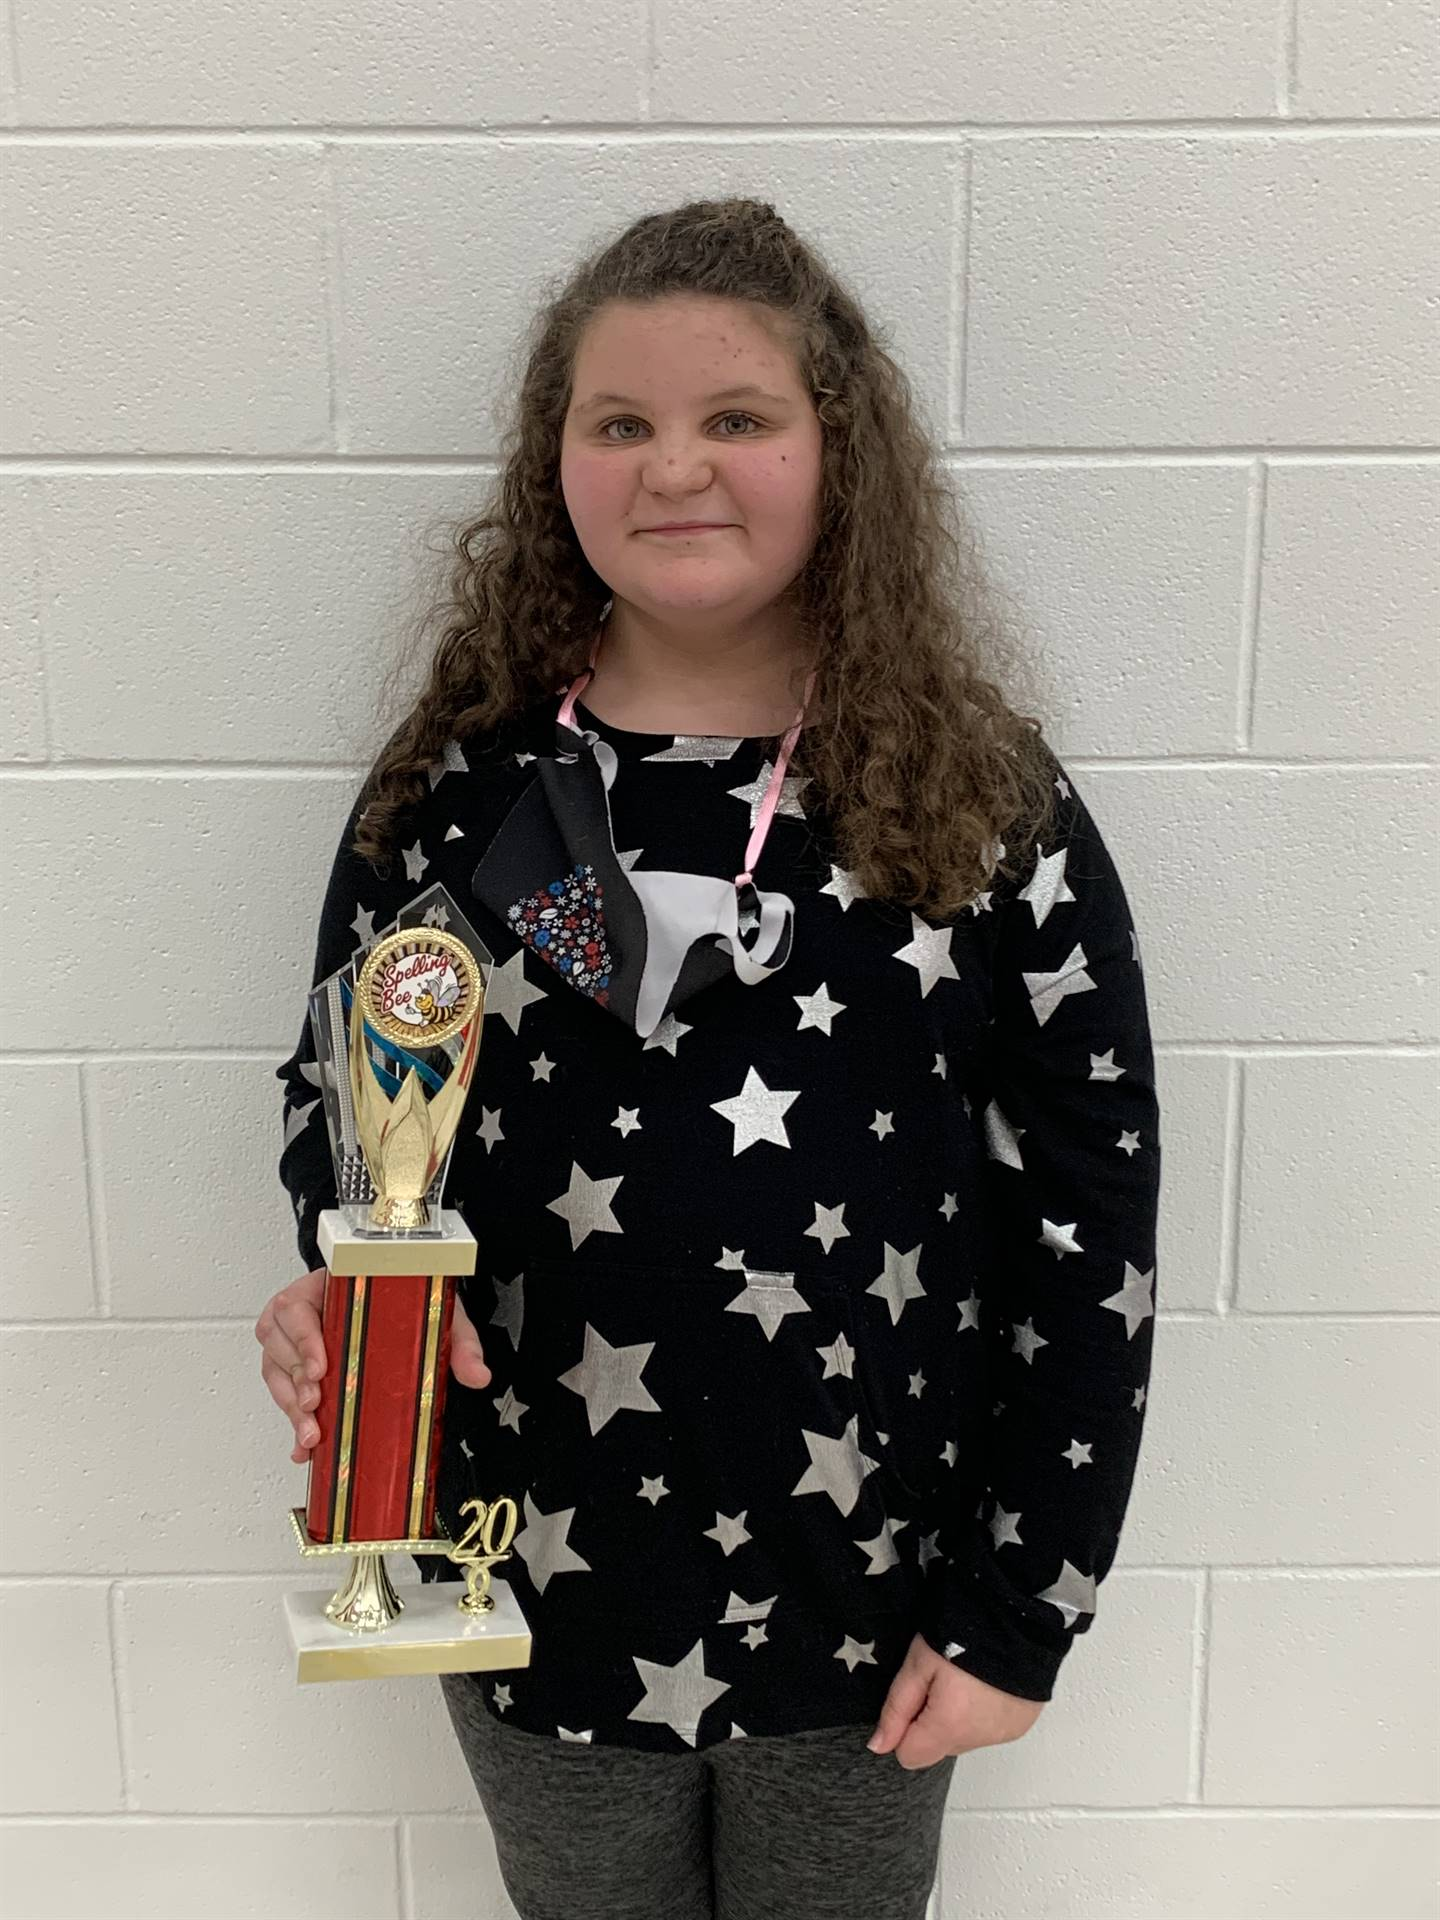 Second place is 4th grader Hannah McCracken